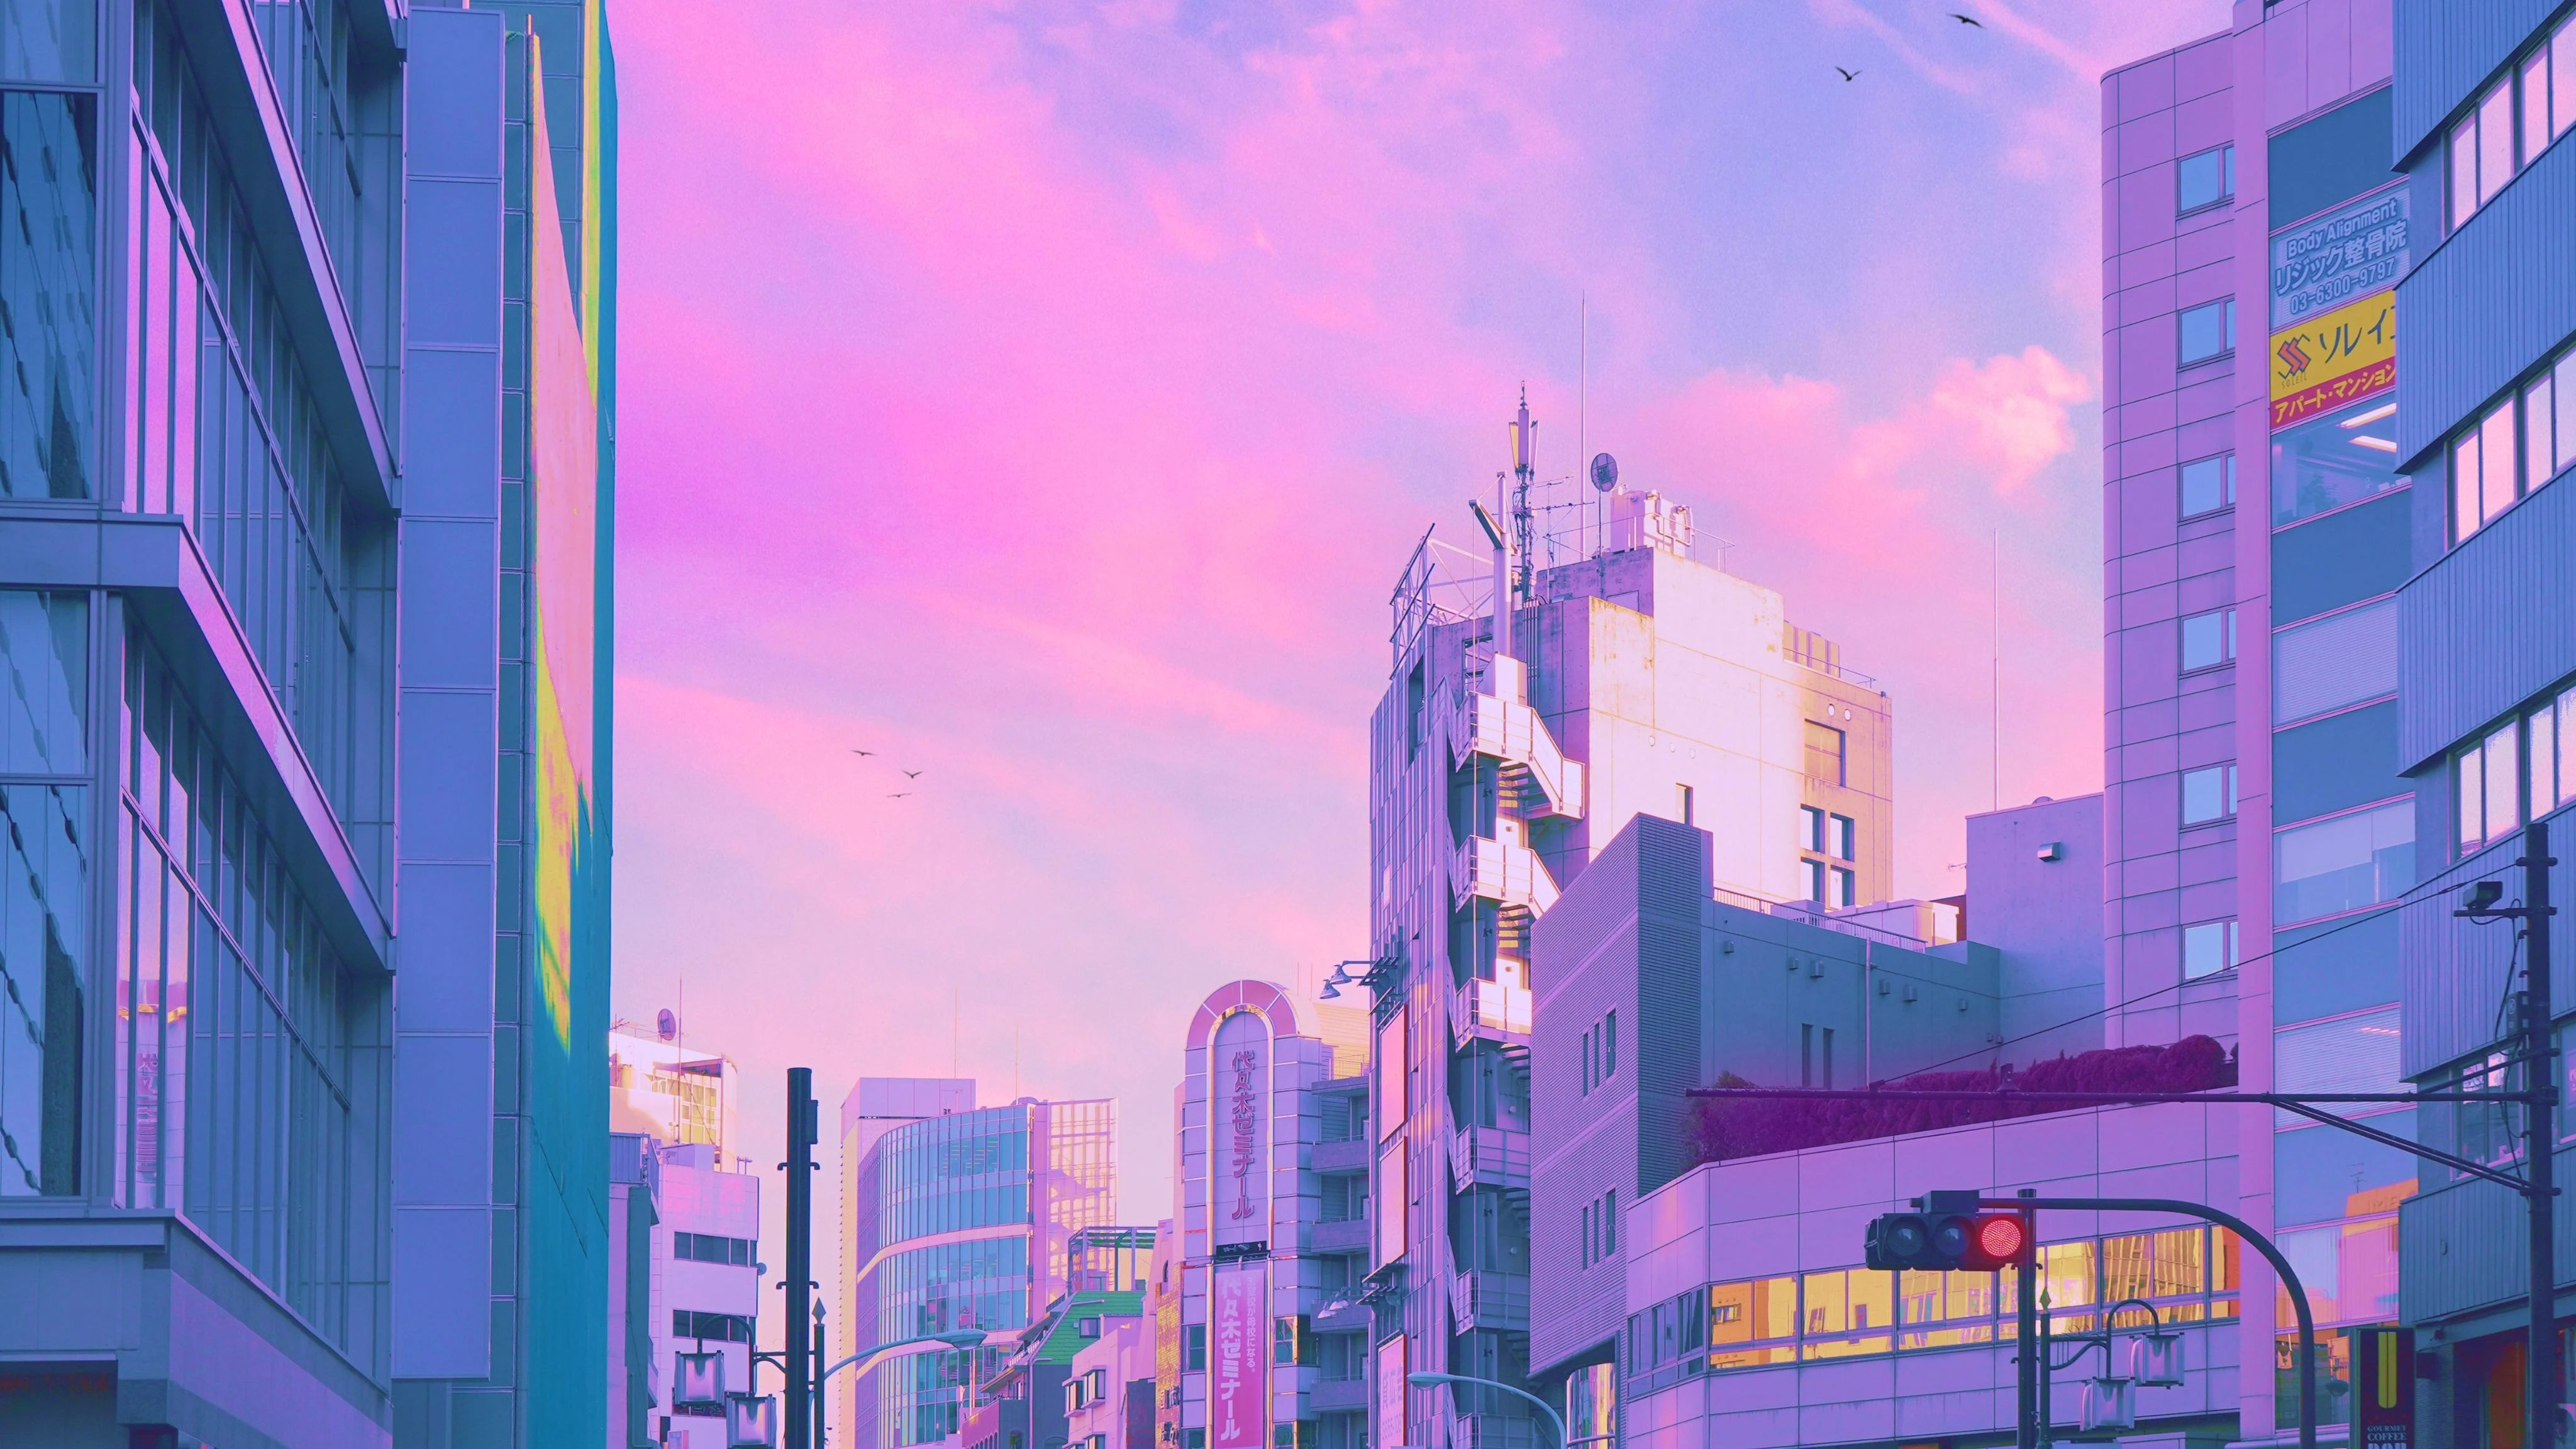 Download for free 55+ dark anime aesthetic wallpapers. Tokyo Aesthetic Ps4 Wallpapers - Wallpaper Cave